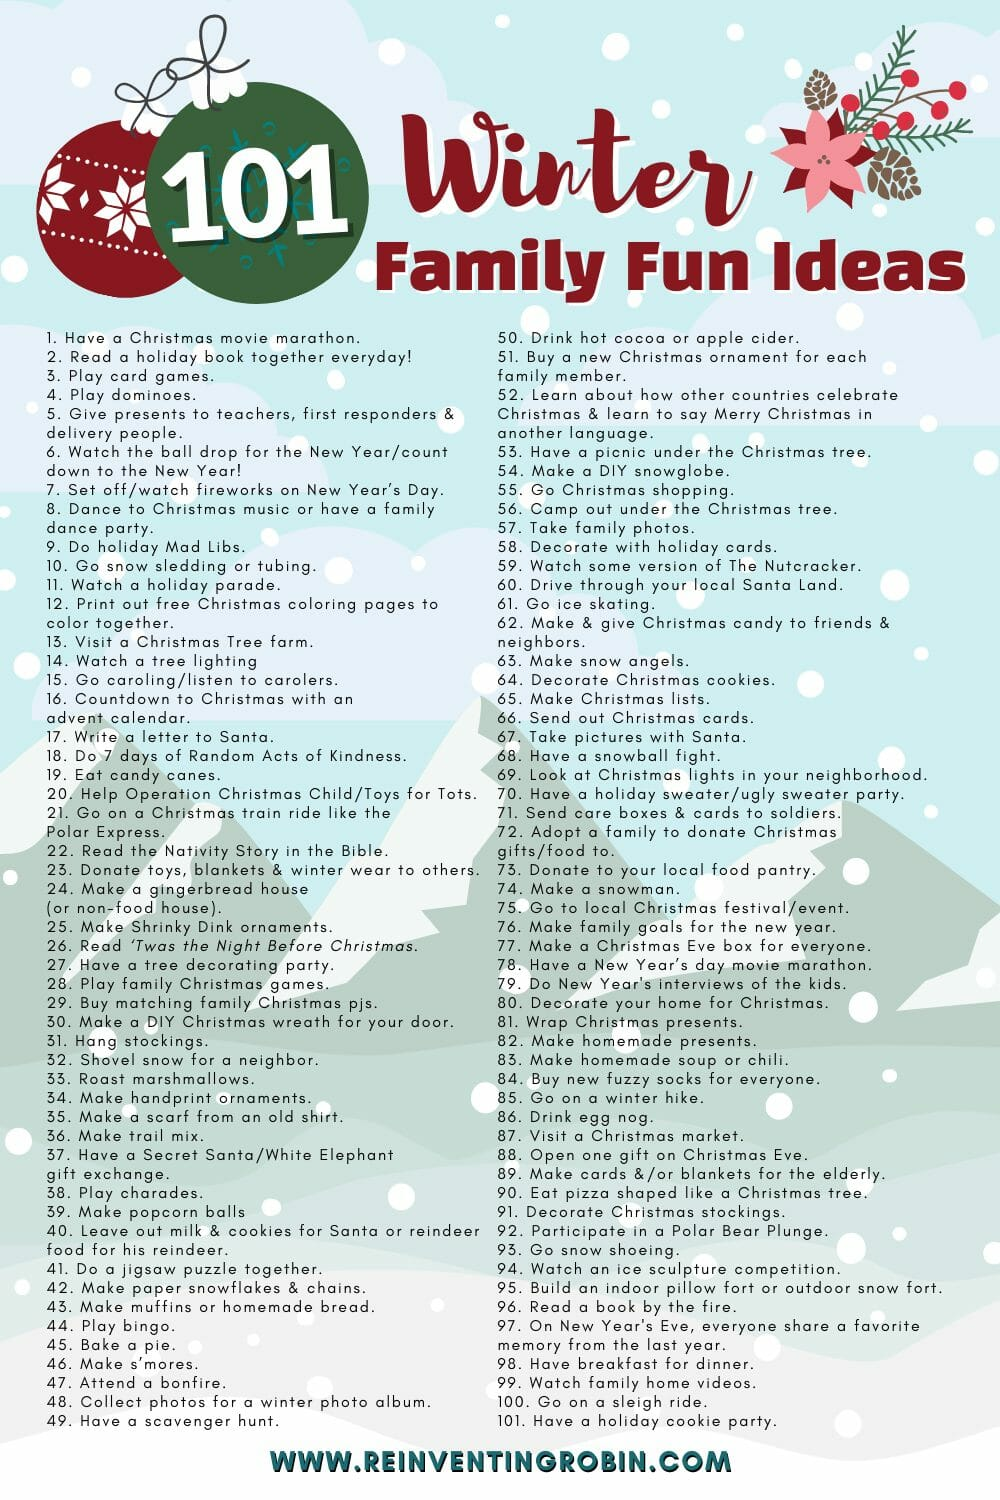 101 Winter Family Fun Ideas www.reinventingrobin.com